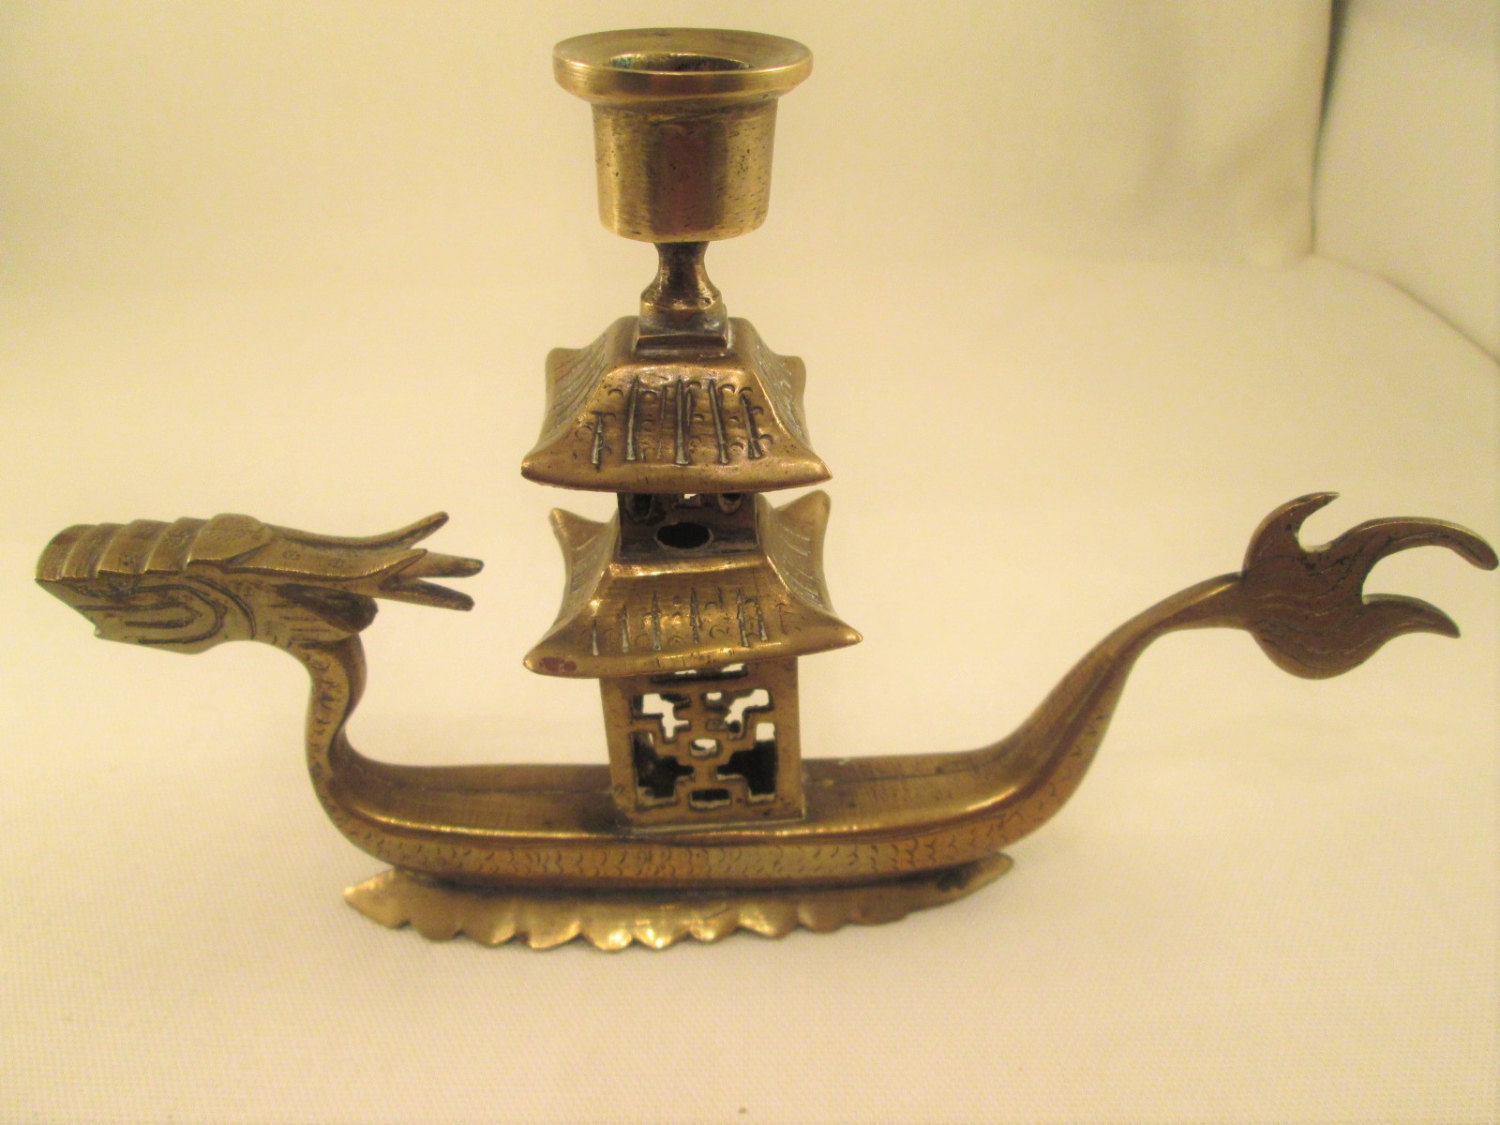 Vintage brass dragon candle holder made in china wwii era for Brass home decor